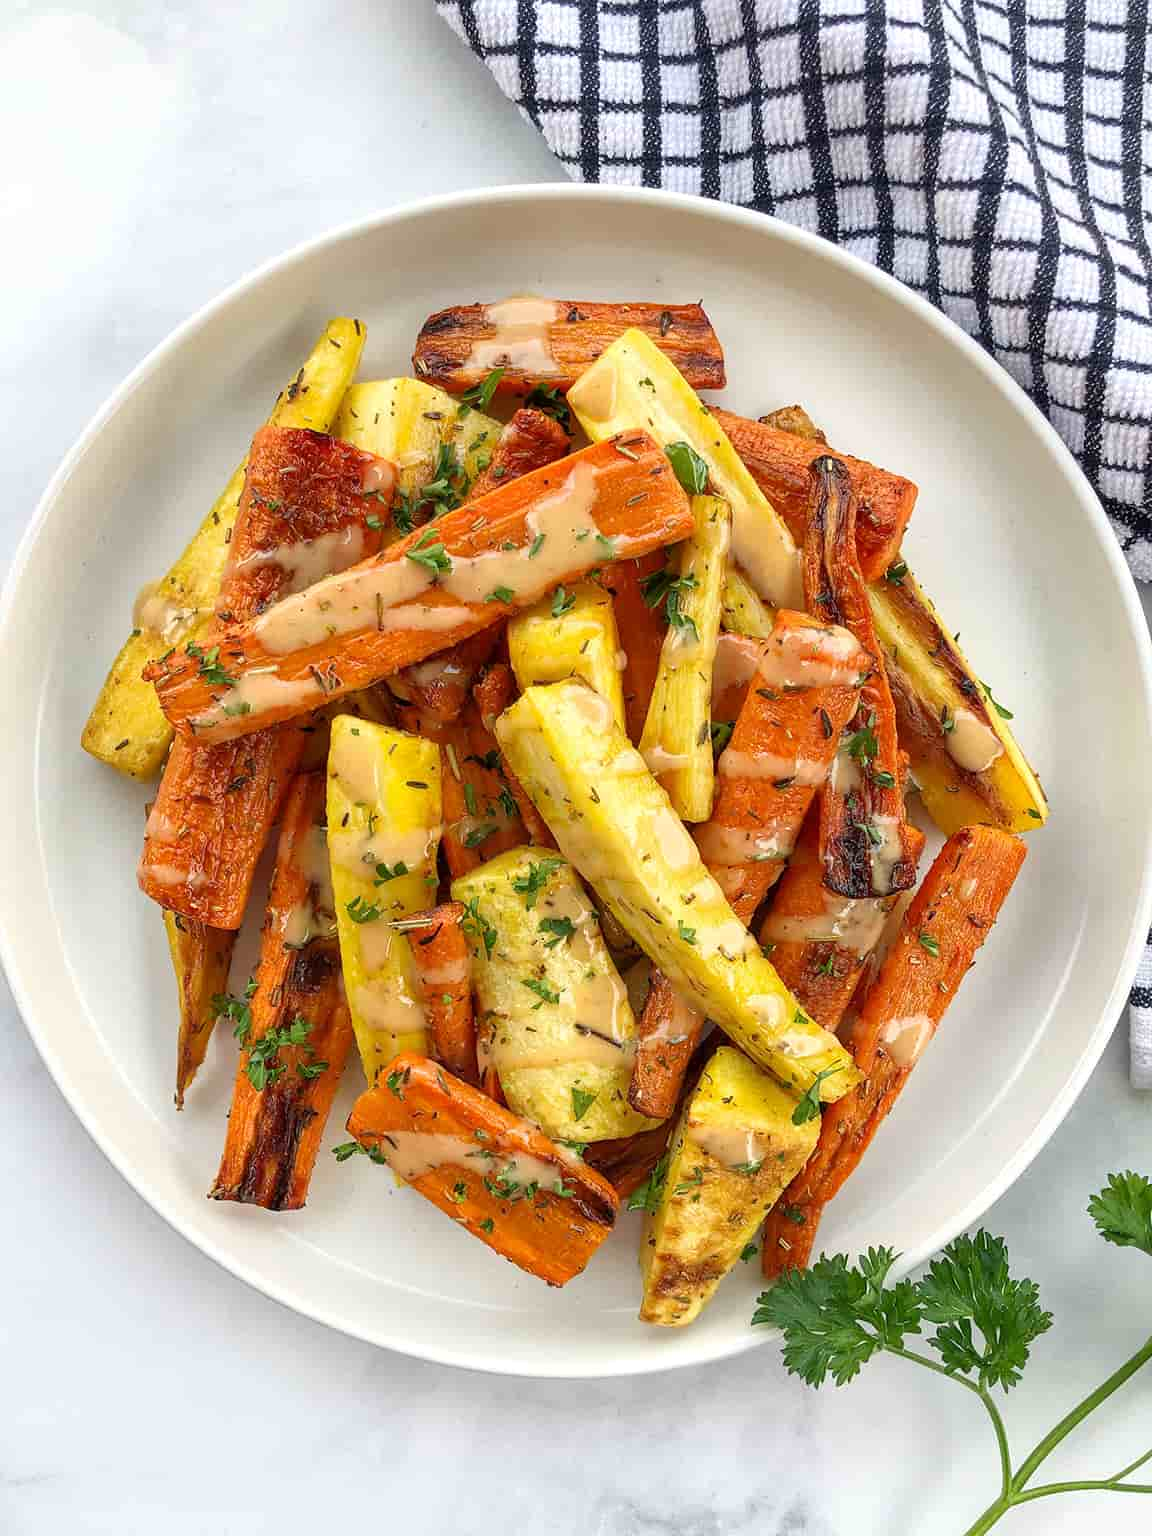 A plate of roasted carrots and pasnips.